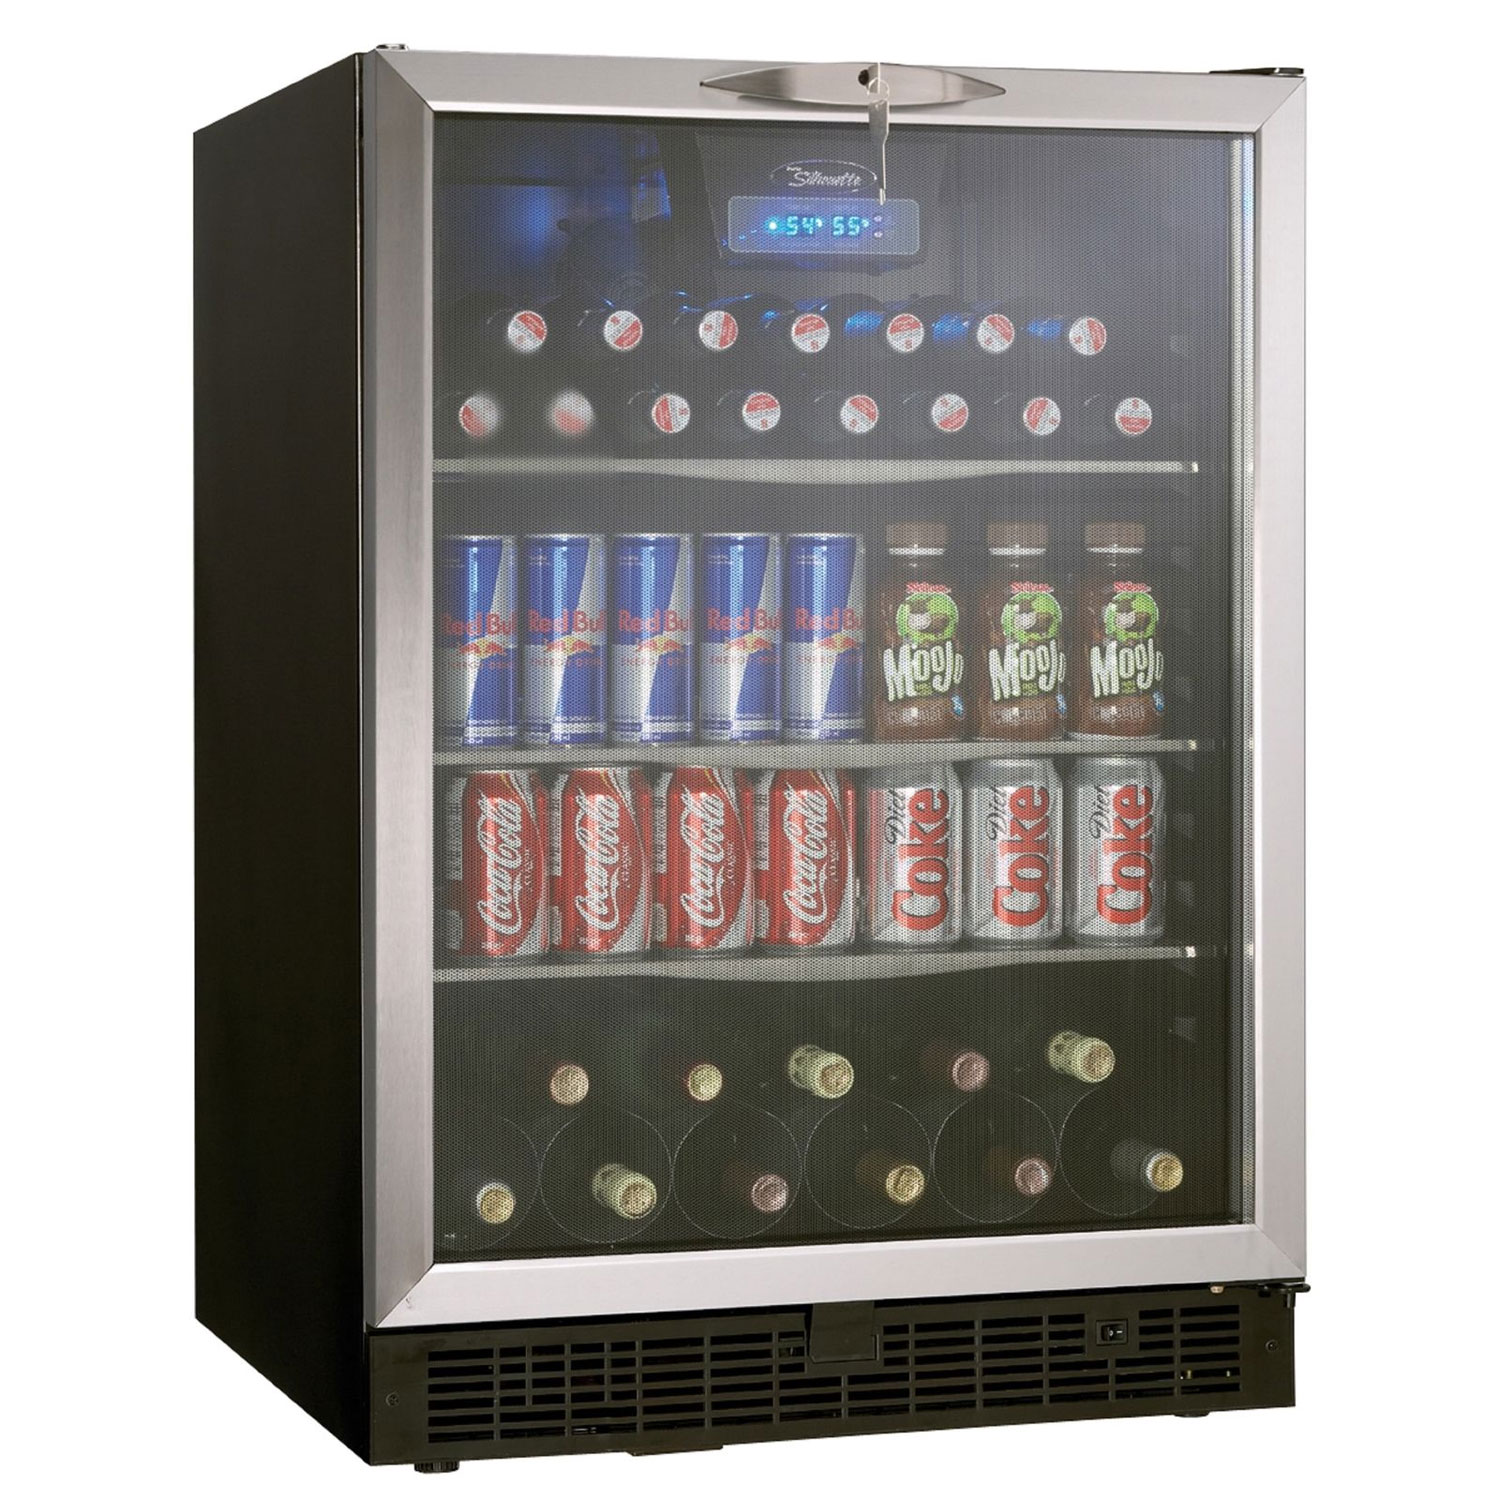 Danby Silhouette Ricotta Dbc514bls 5 3 Cu Ft Beverage Center Stainless Steel Door